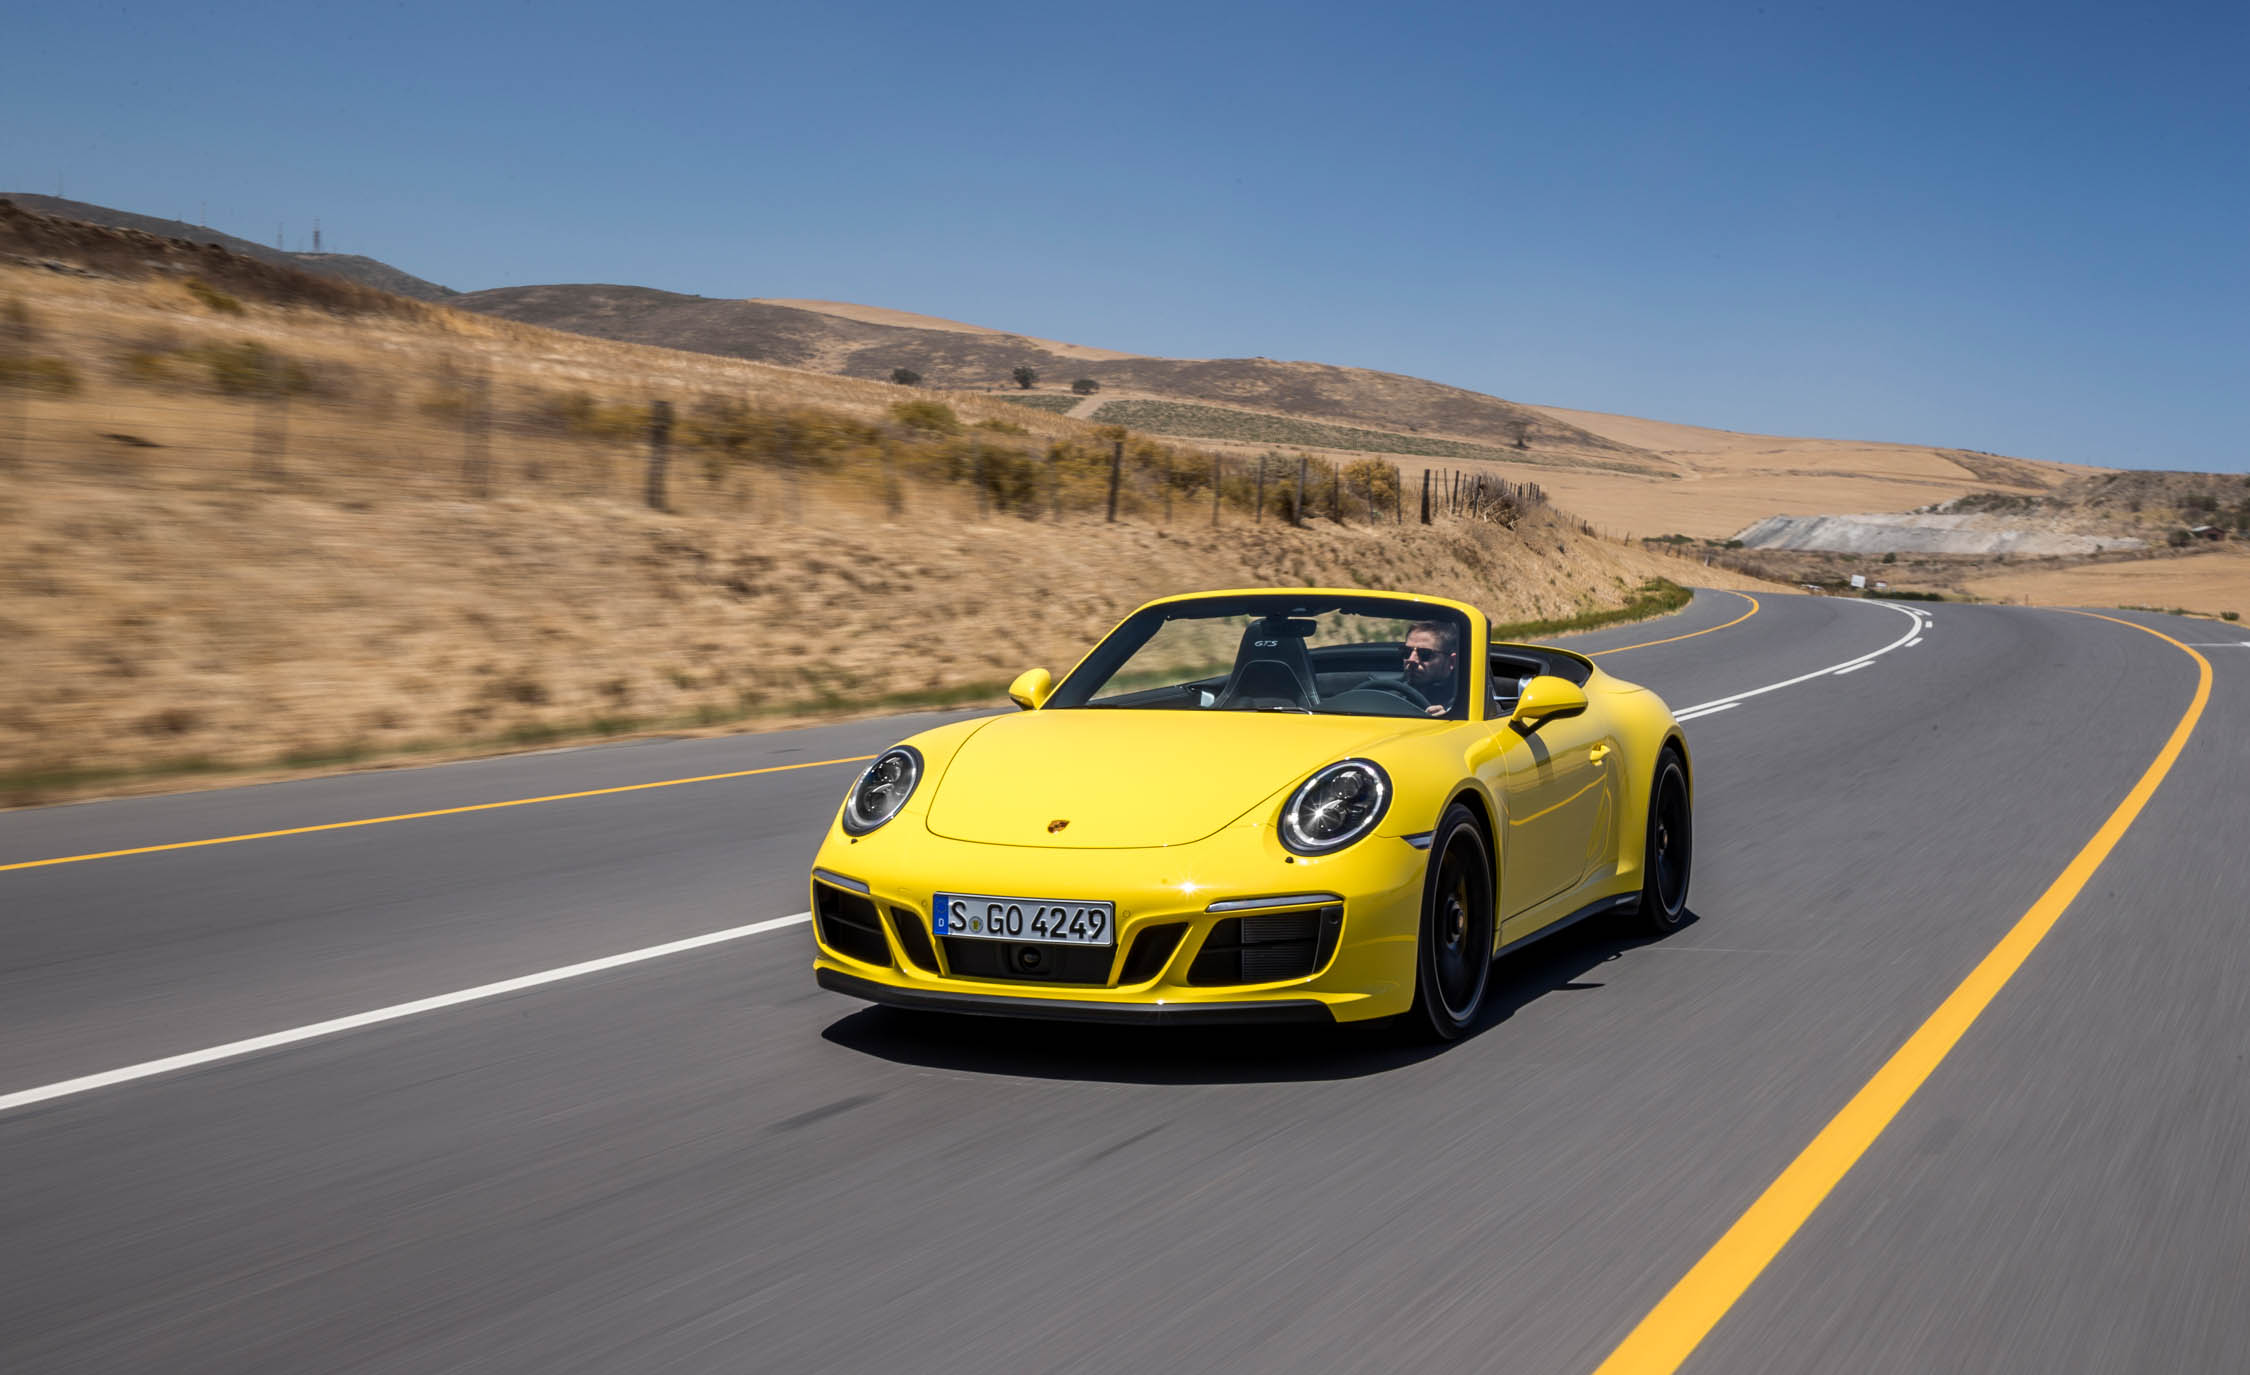 2017 Porsche 911 Carrera 4 GTS Cabriolet Test Drive (Photo 10 of 97)